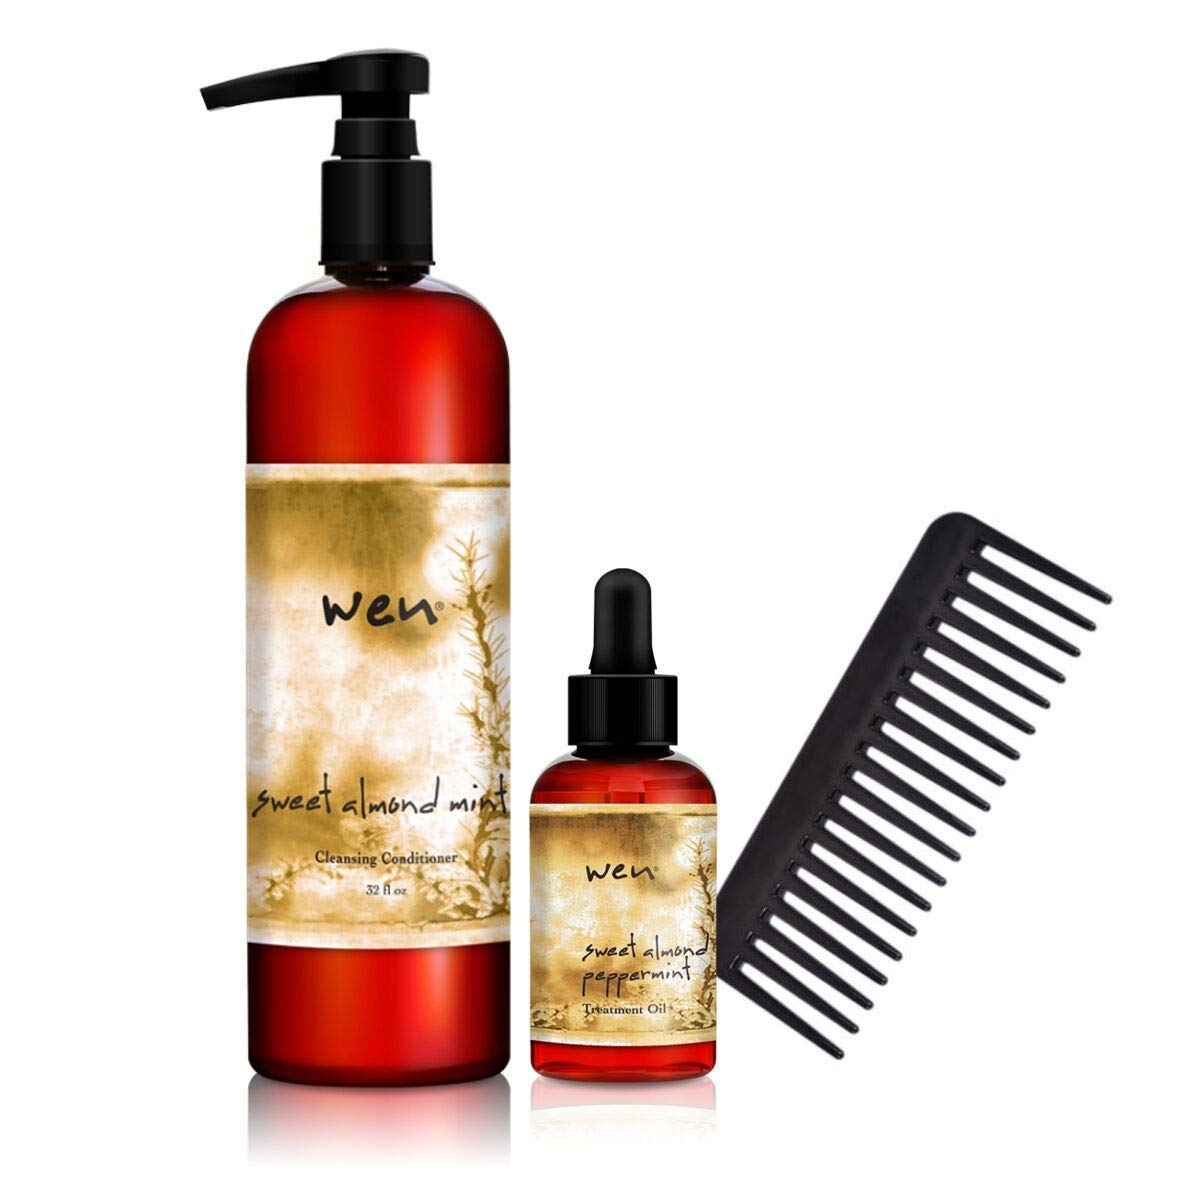 Wen Fall Ginger Pumpkin - Cleanses, Nourishes and Restores the Look of Hair, No Harsh Sulfates (16 oz) w/CD